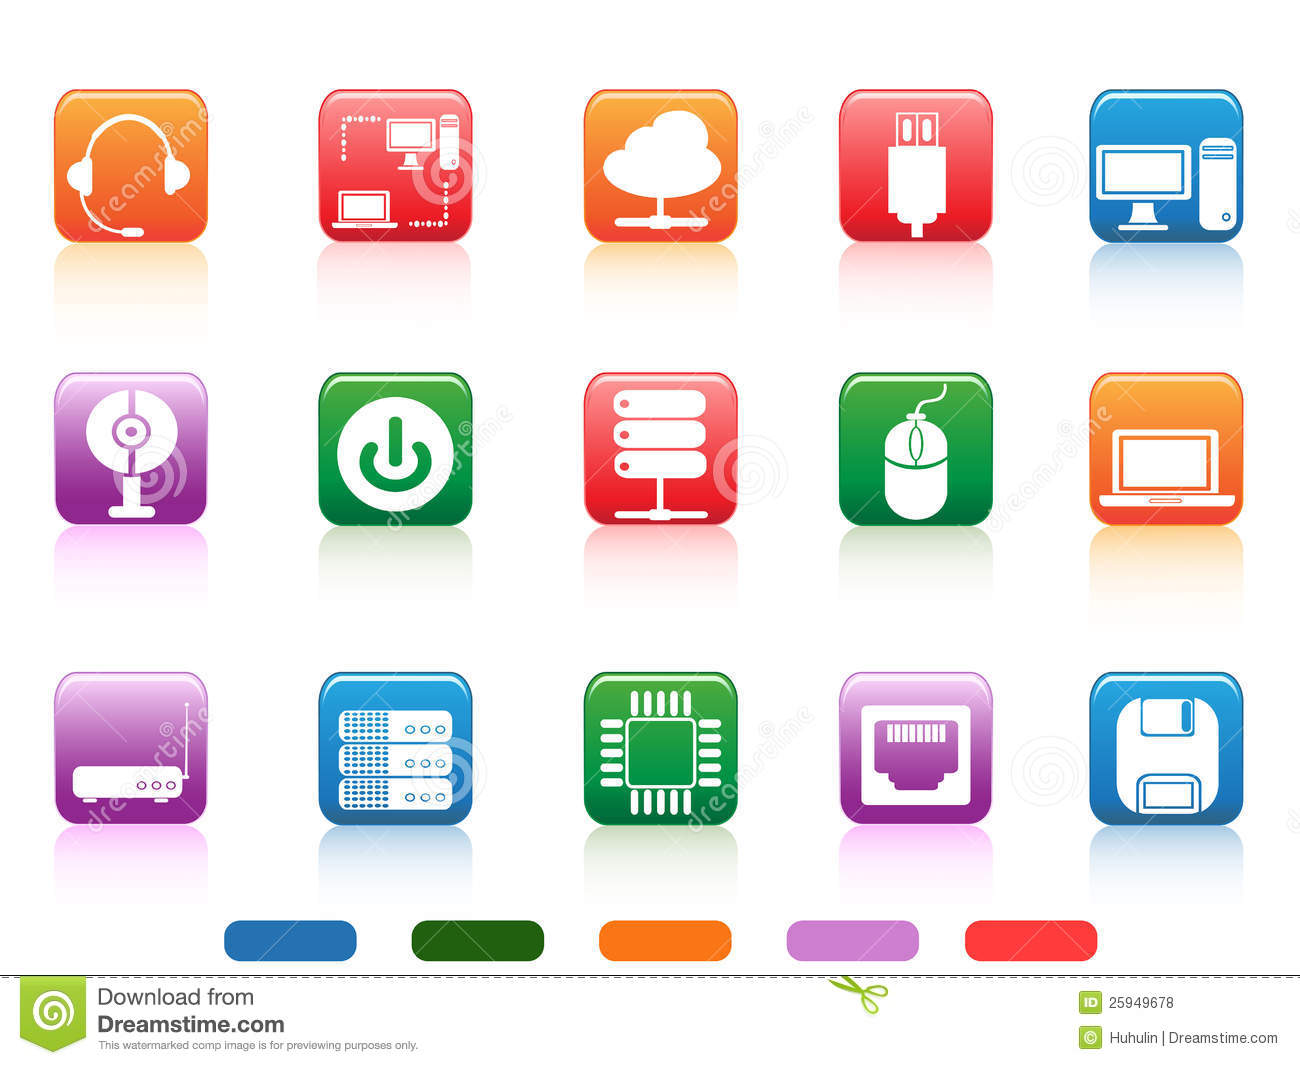 Free icons for website with commercial use no attribution